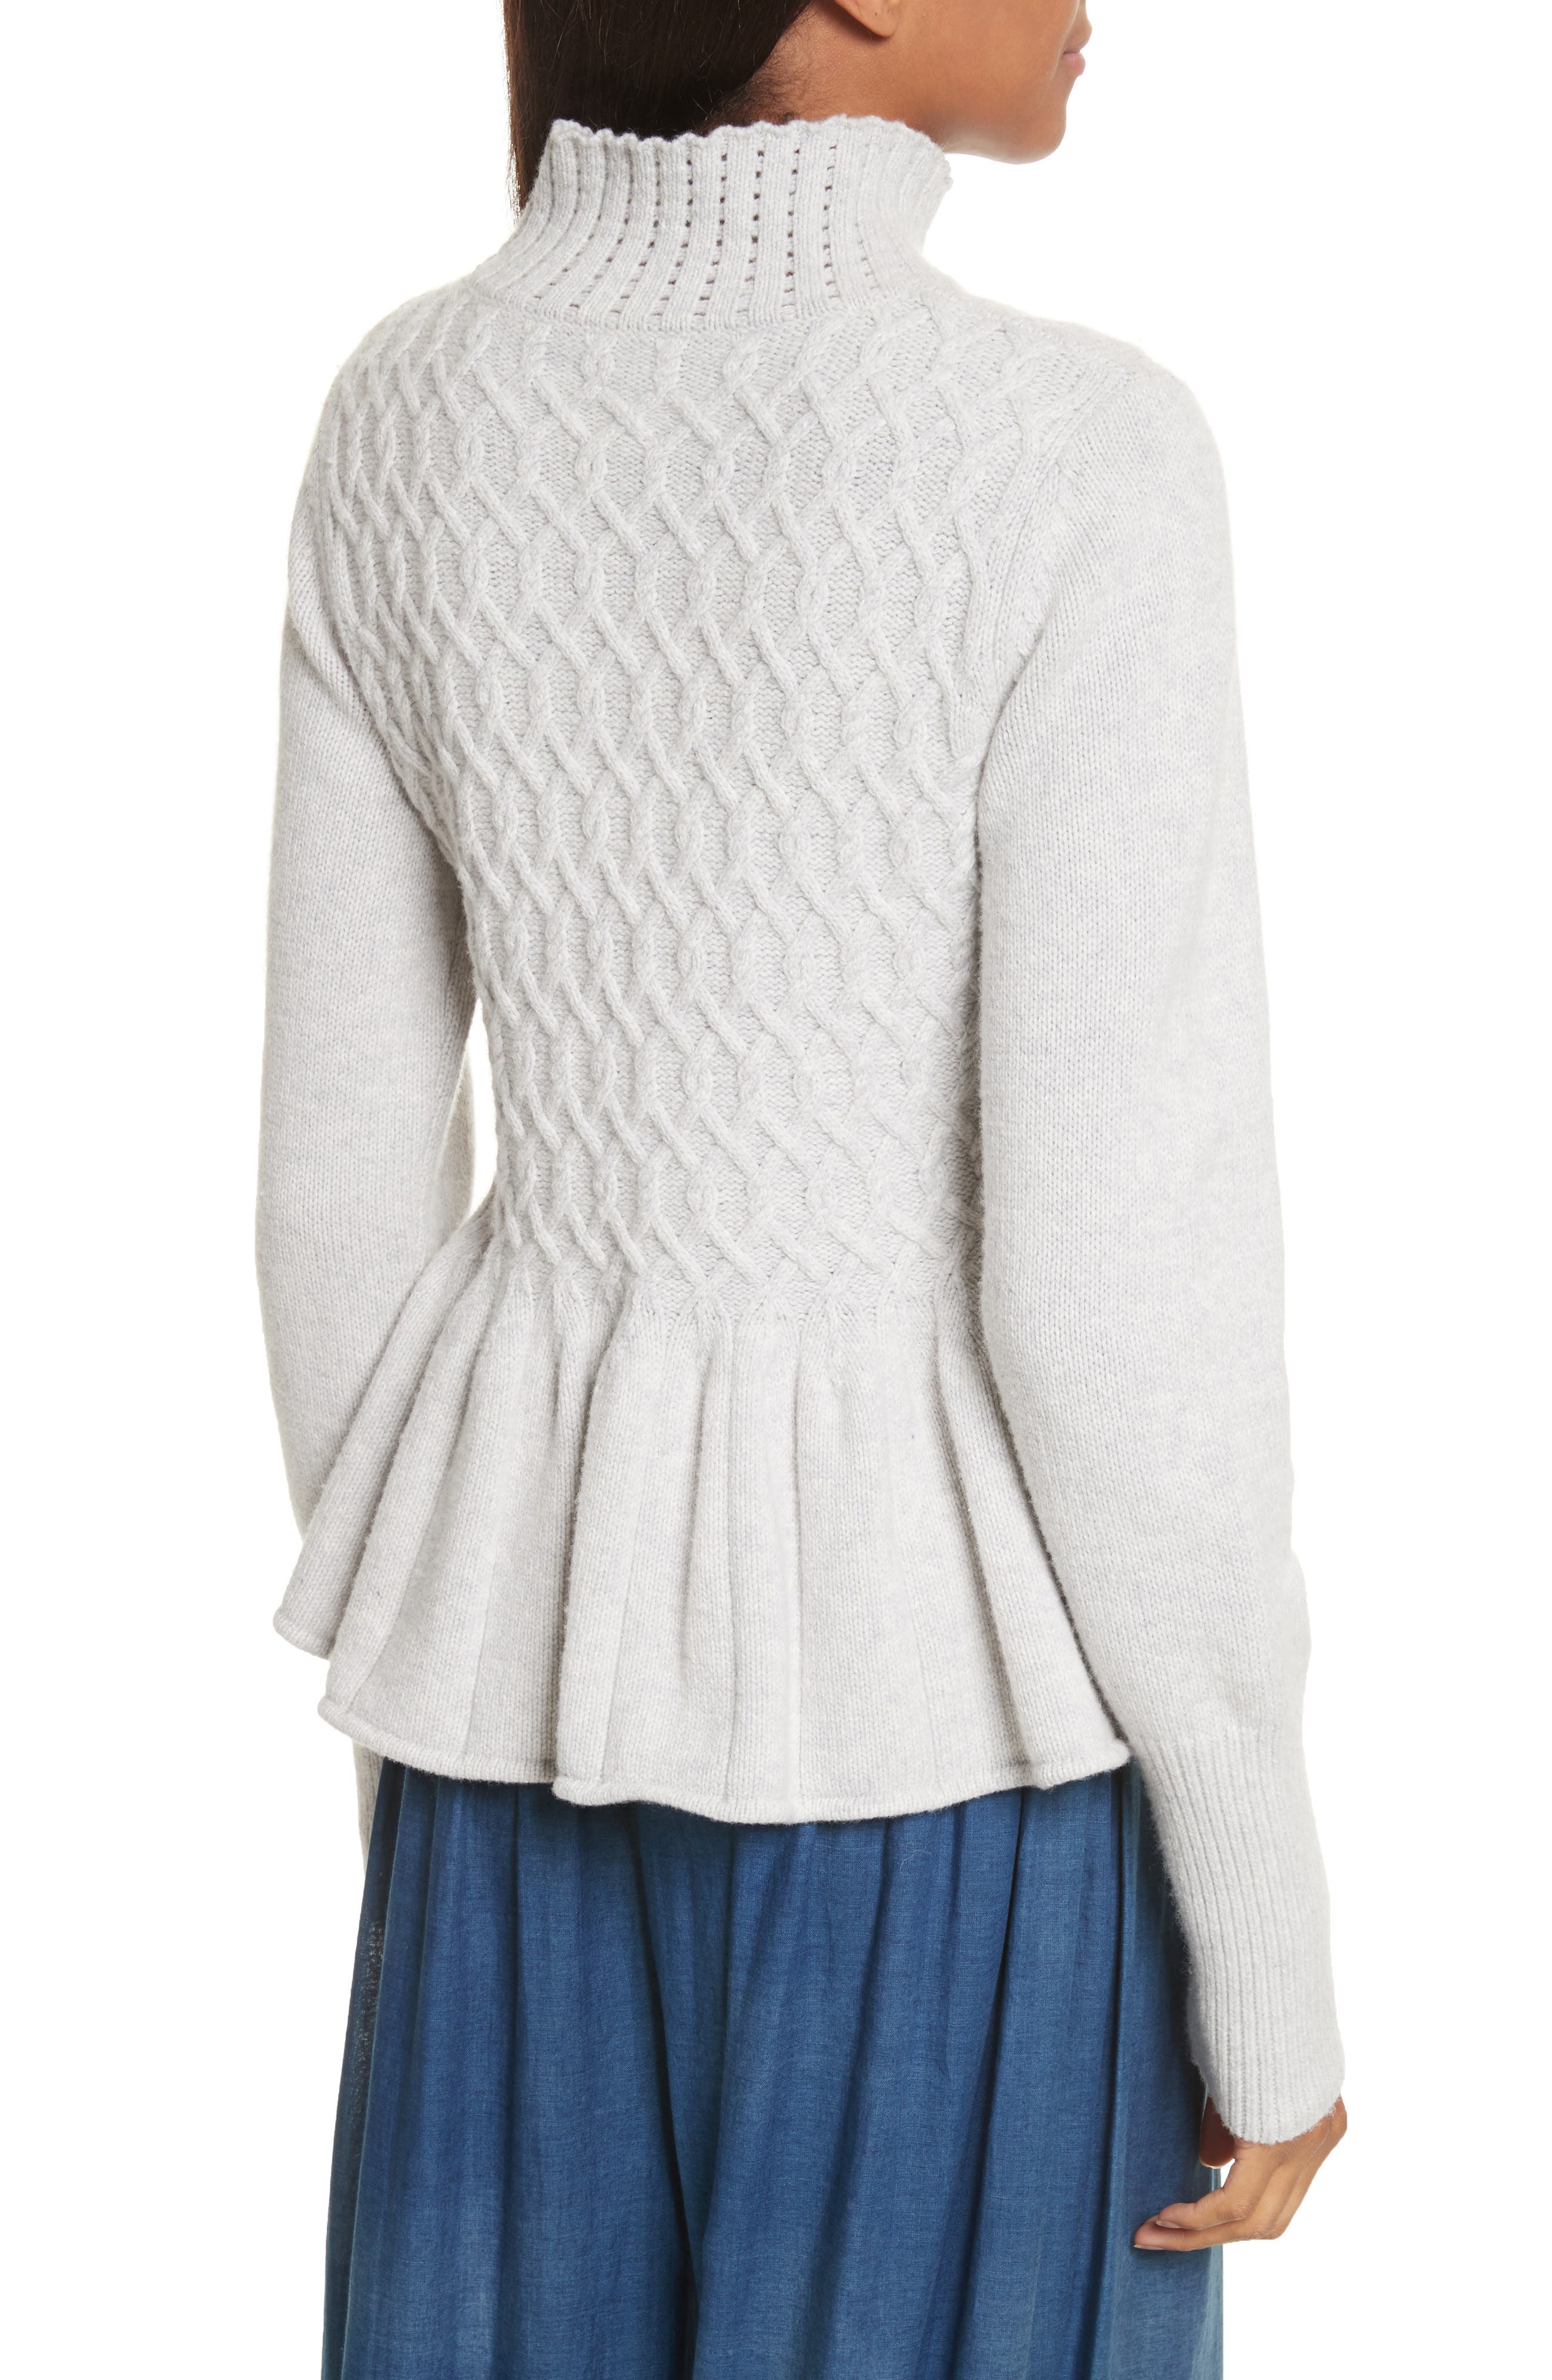 Braided Cable Mock Neck Pullover,                             Alternate thumbnail 2, color,                             Light Heather Grey